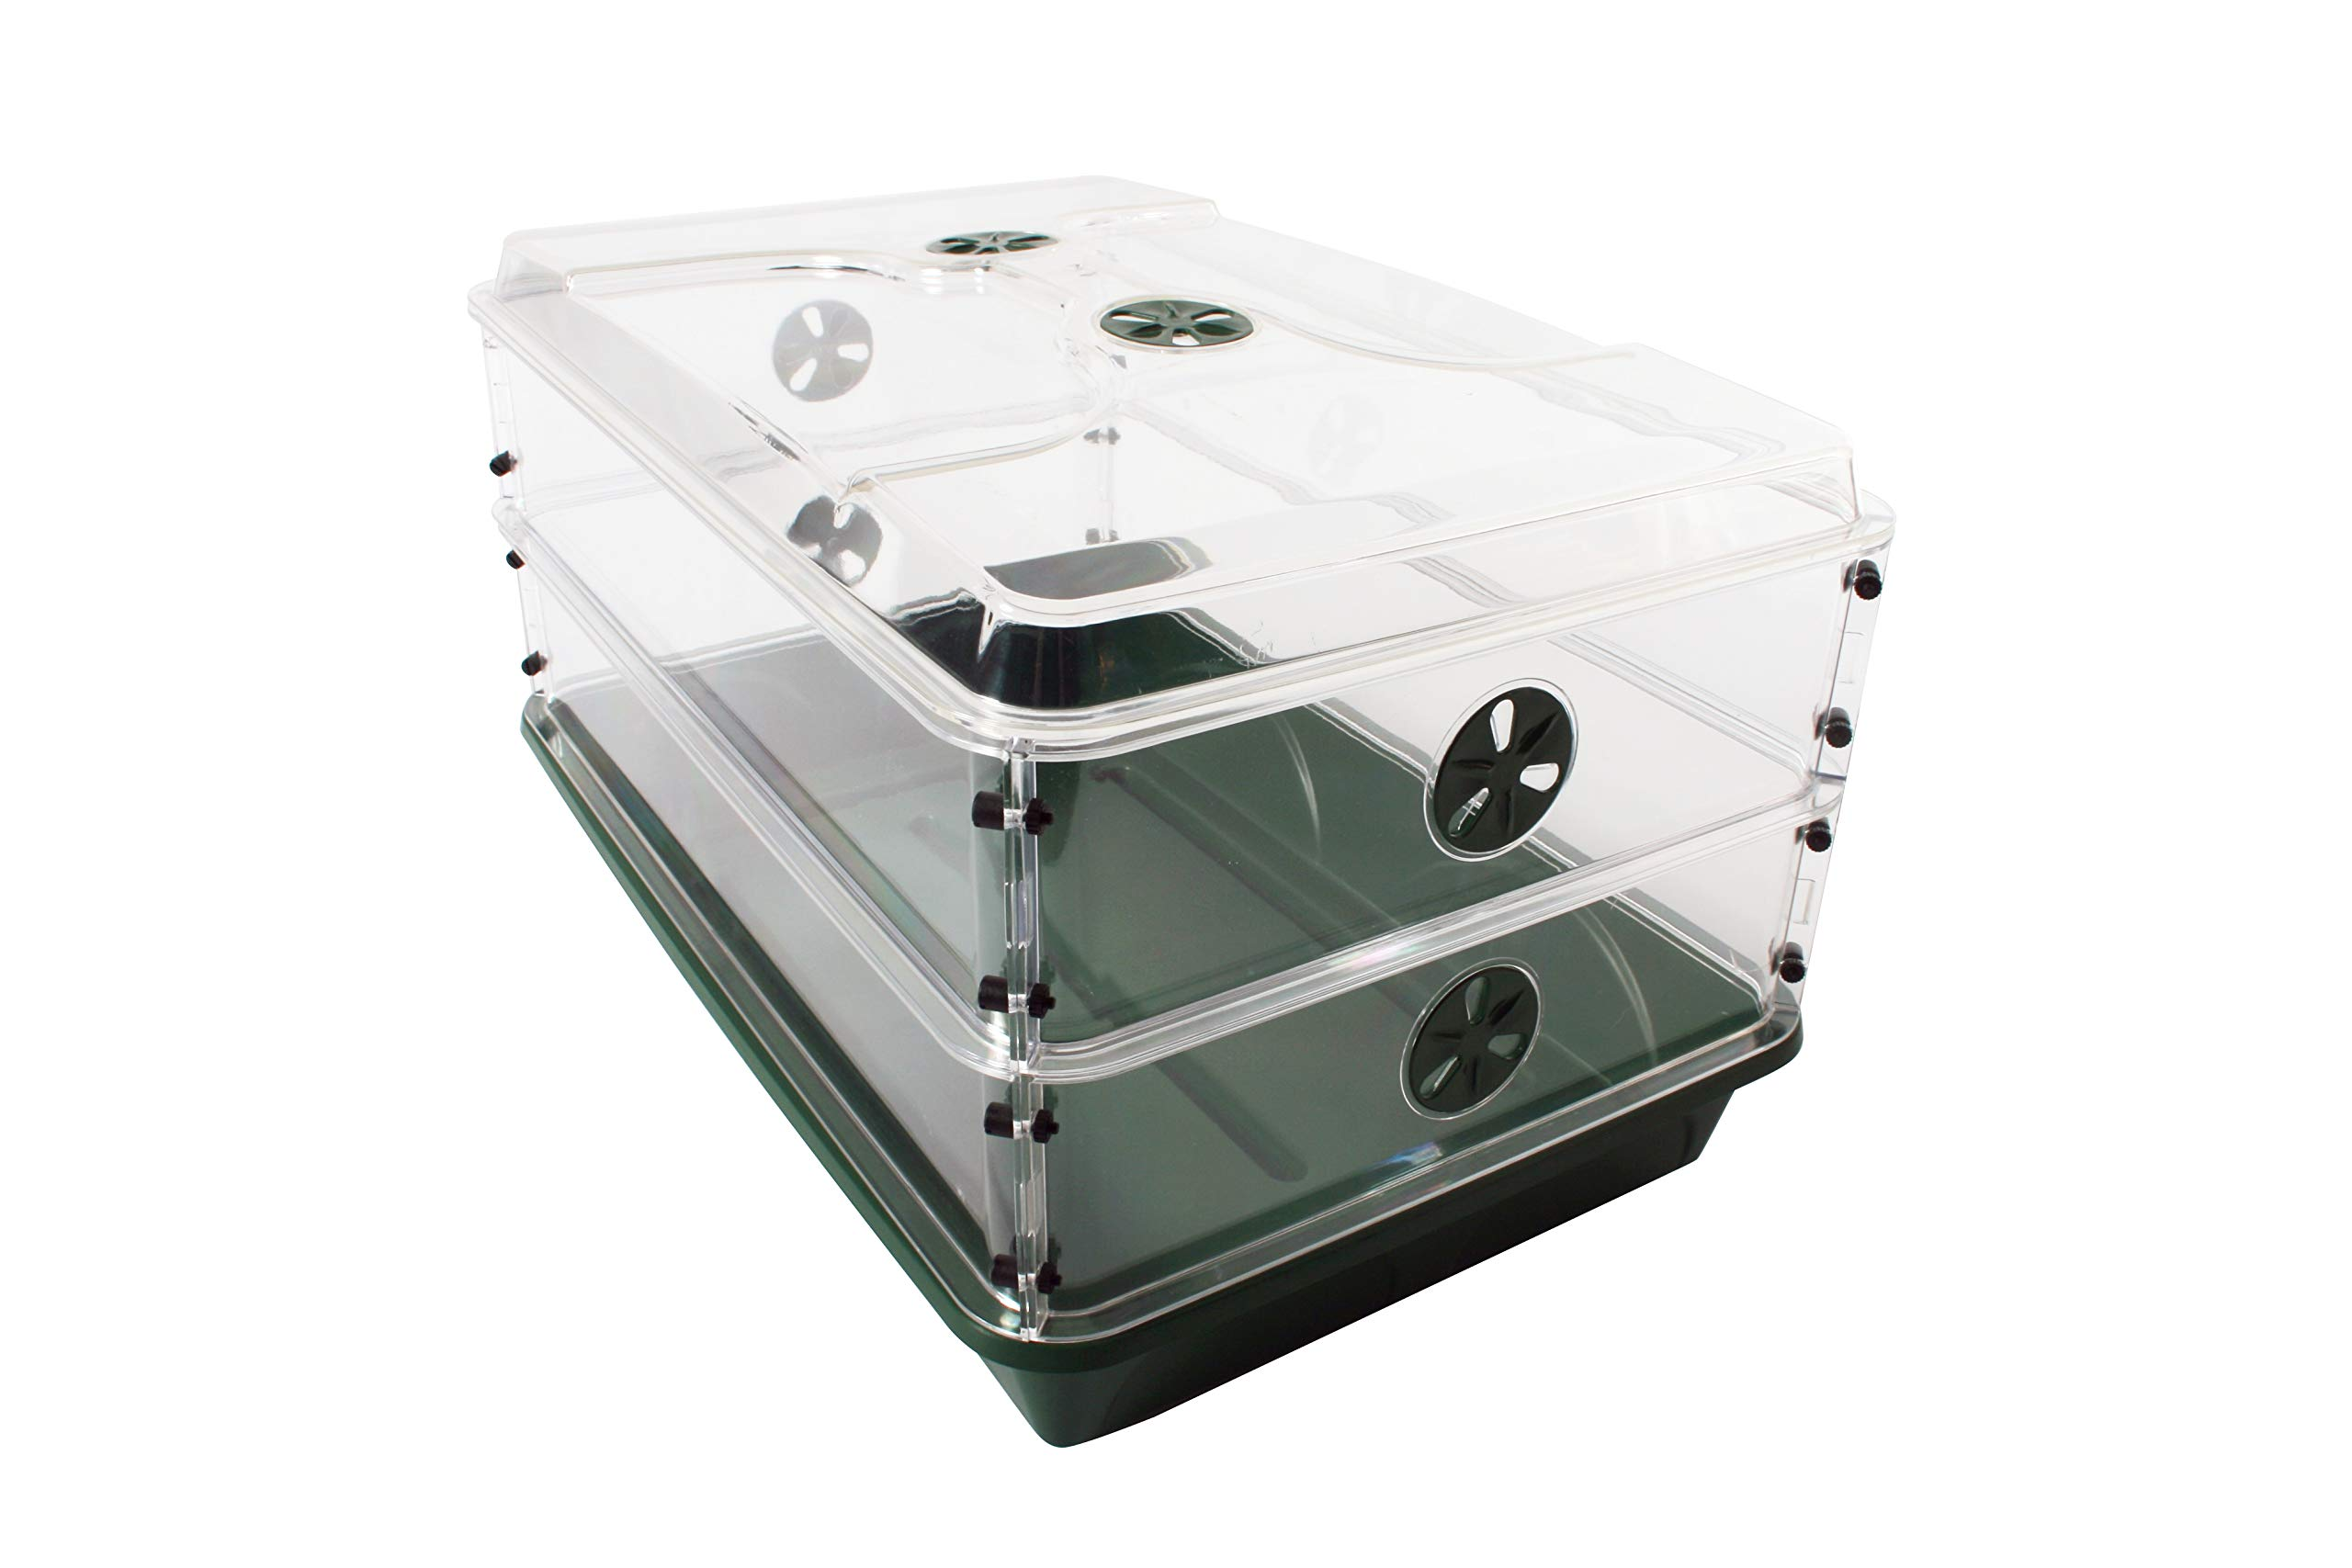 EarlyGrow 93807 24'' x 15'' x 12.75'' Domed Propagator with 2 Height Extenders, Green